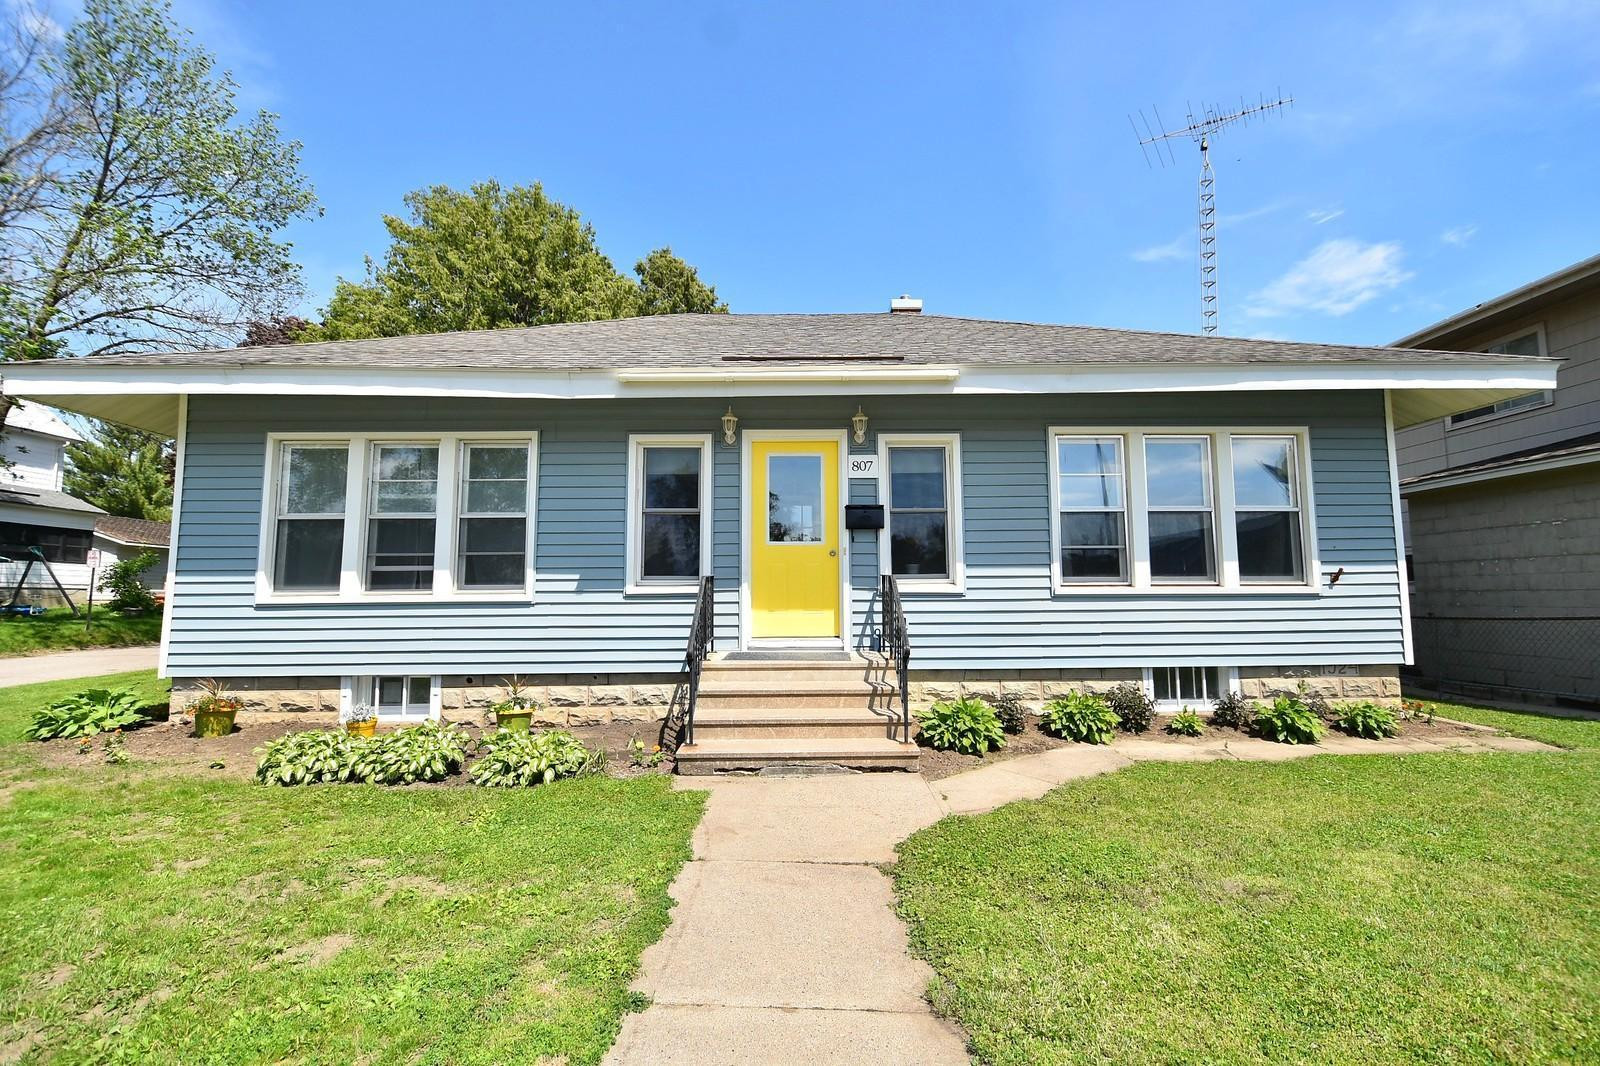 807 Whitewater Avenue, MN 55972